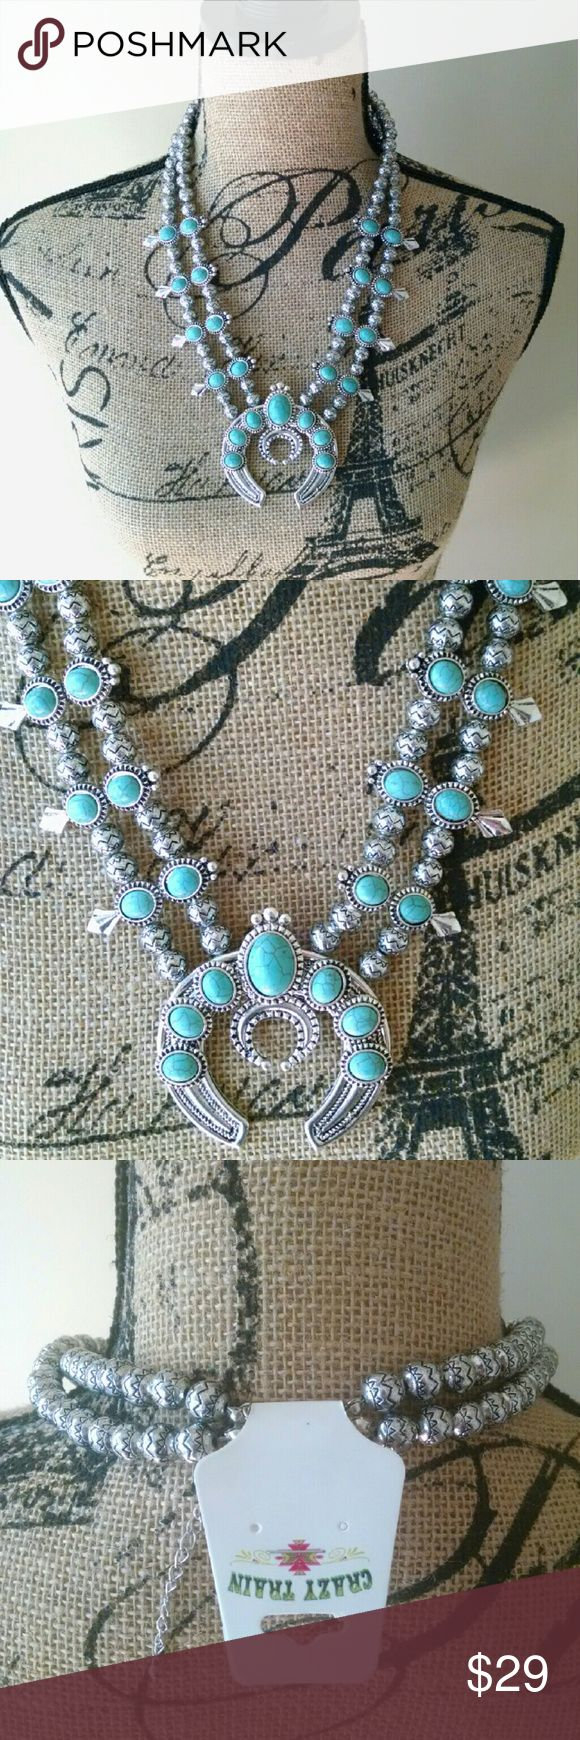 """Crazy Train Necklace Turquoise Sahara Blossom Crazy Train Sahara Blossom Necklace Turquoise Silver Horseshoe Western Cowgirl  Beautiful Crazy Train Sahara Blossom Necklace  Turquoise and silver color  From clasp to the end of the horseshoe drop 14""""  ? We are an authorized retailer or Crazy Train items. If you need something you cannot find, please send us a message! Crazy Train  Jewelry Necklaces"""